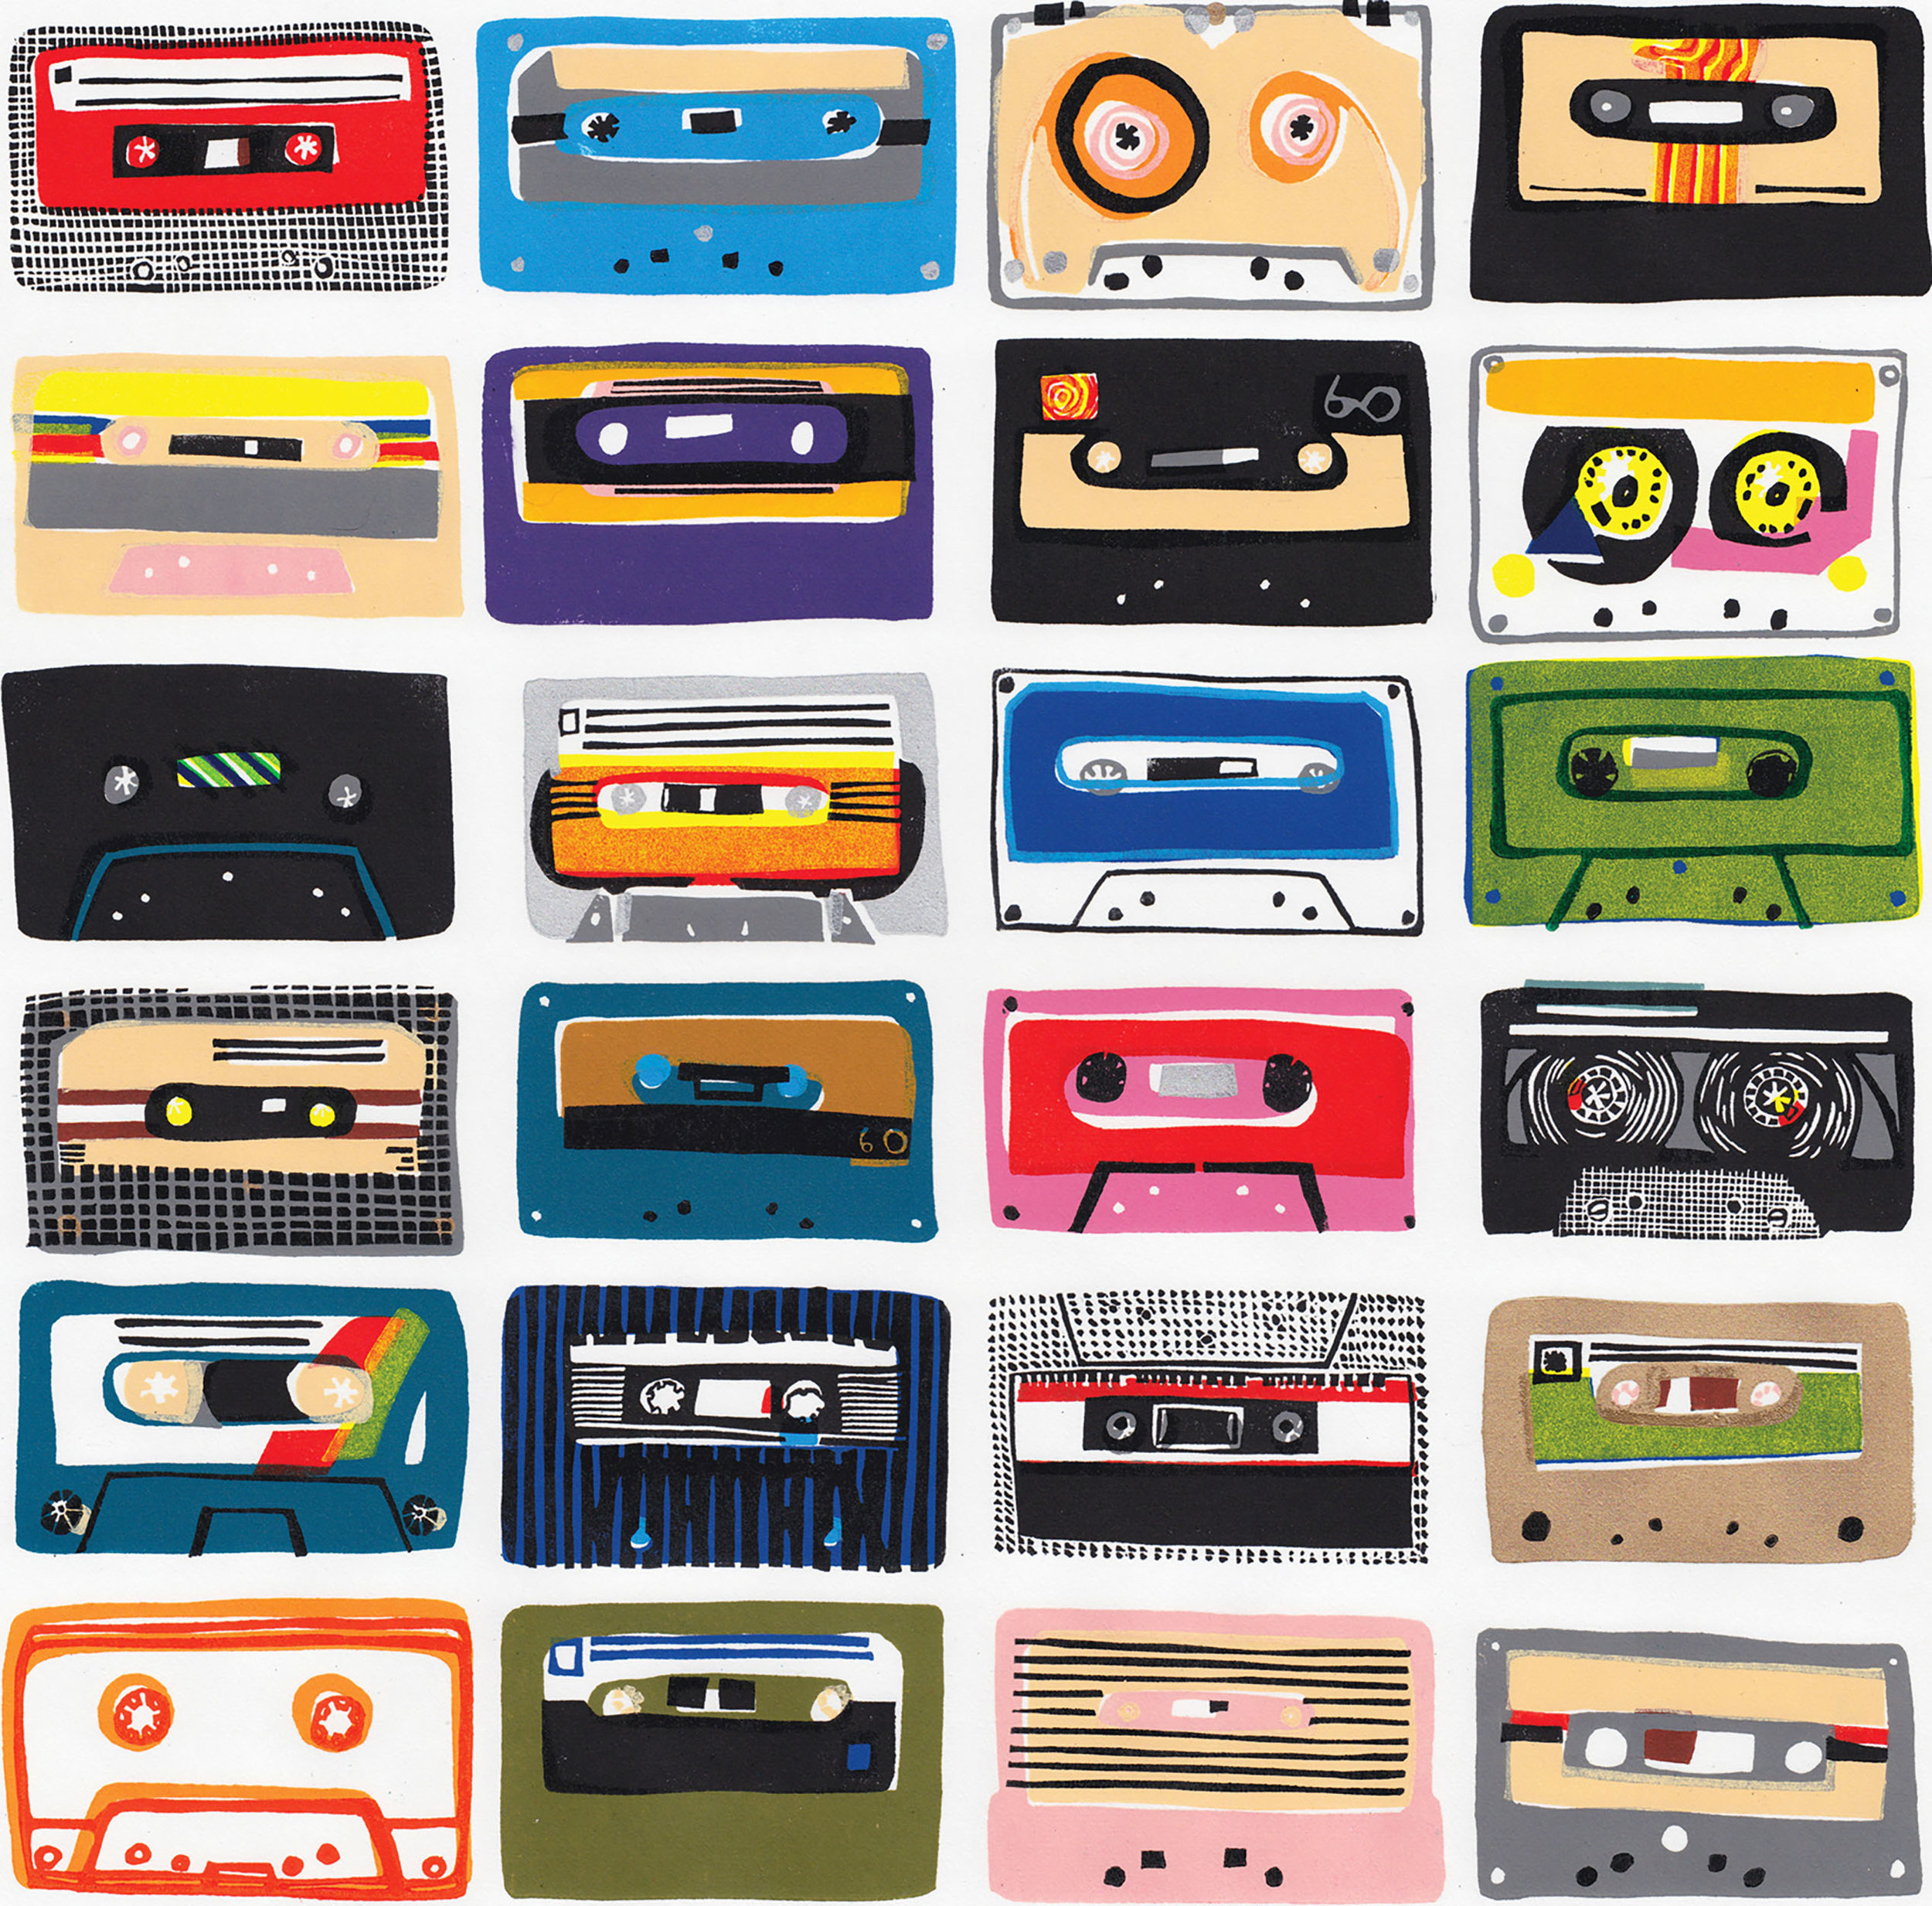 Cassette Tapes B Side by Hannah Forward